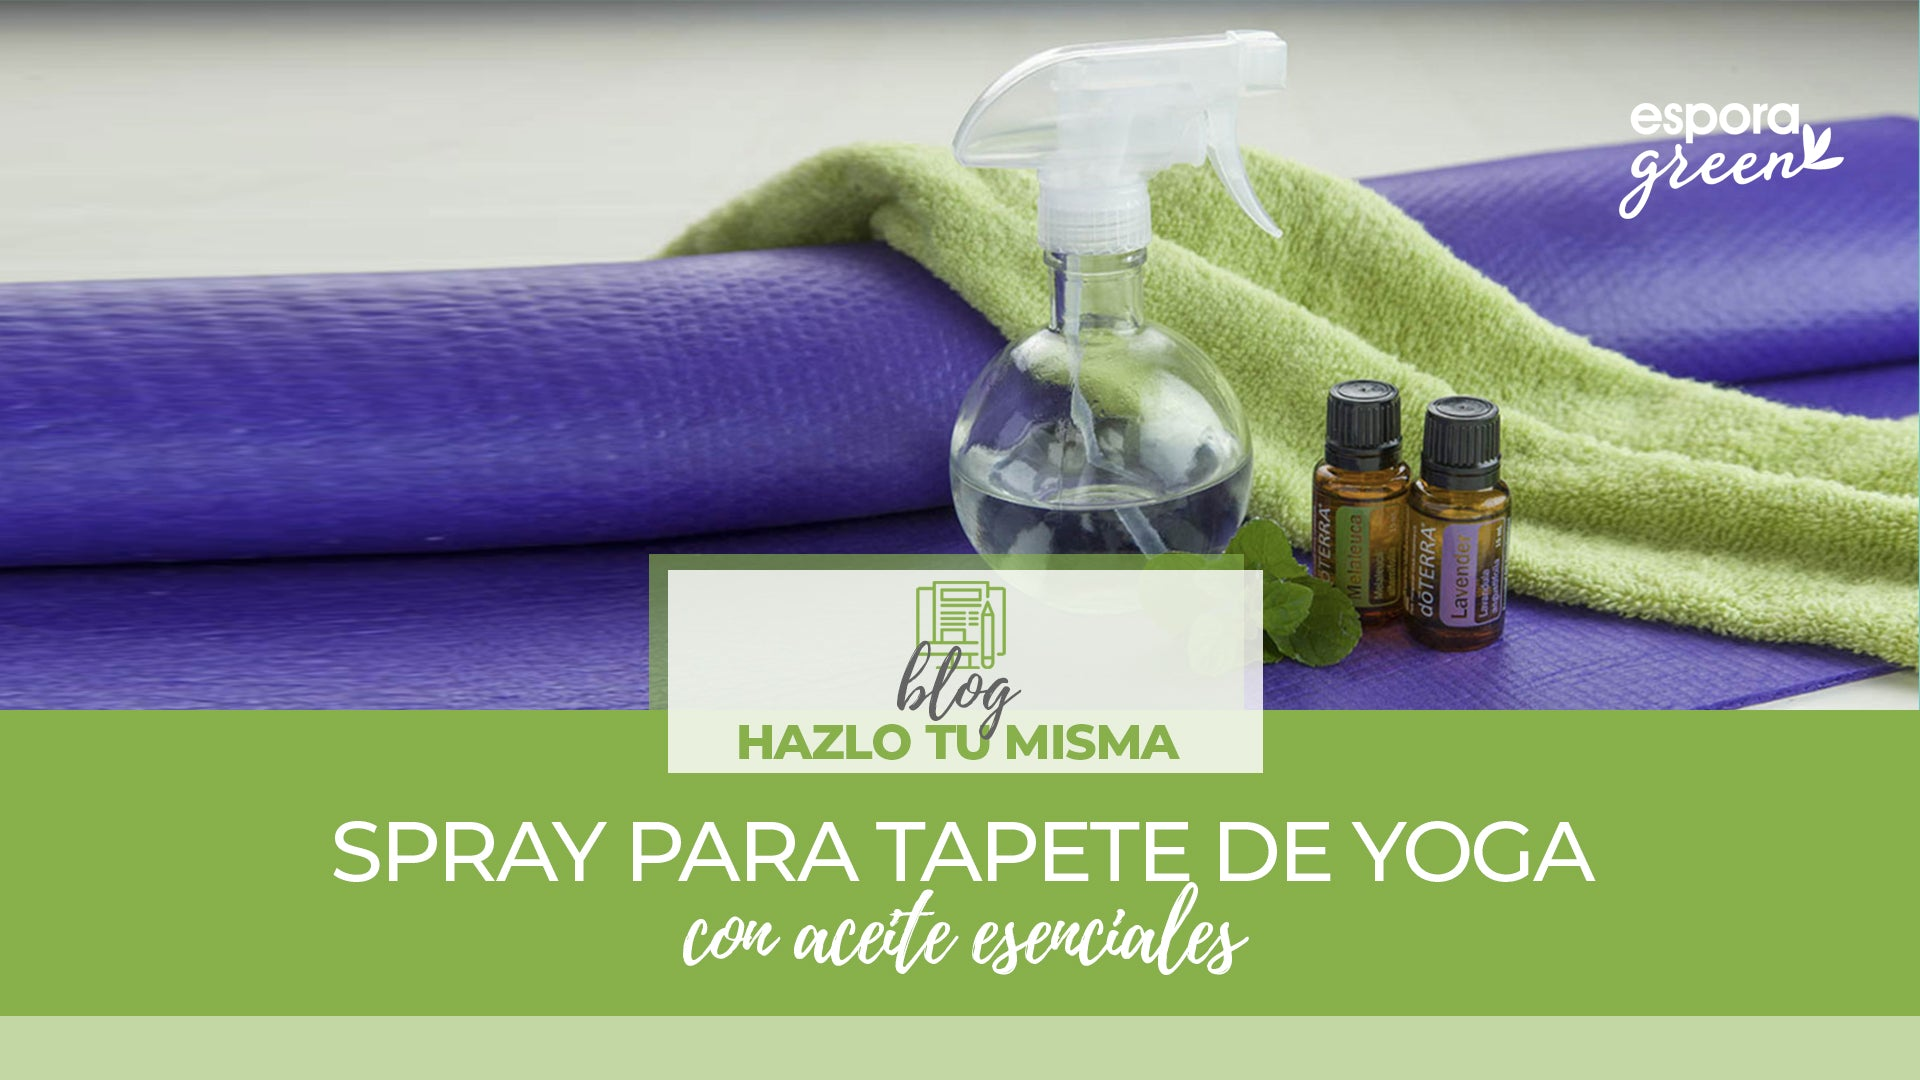 Blog-Espora-Green-DIY-Spray-para-tapete-de-yoga